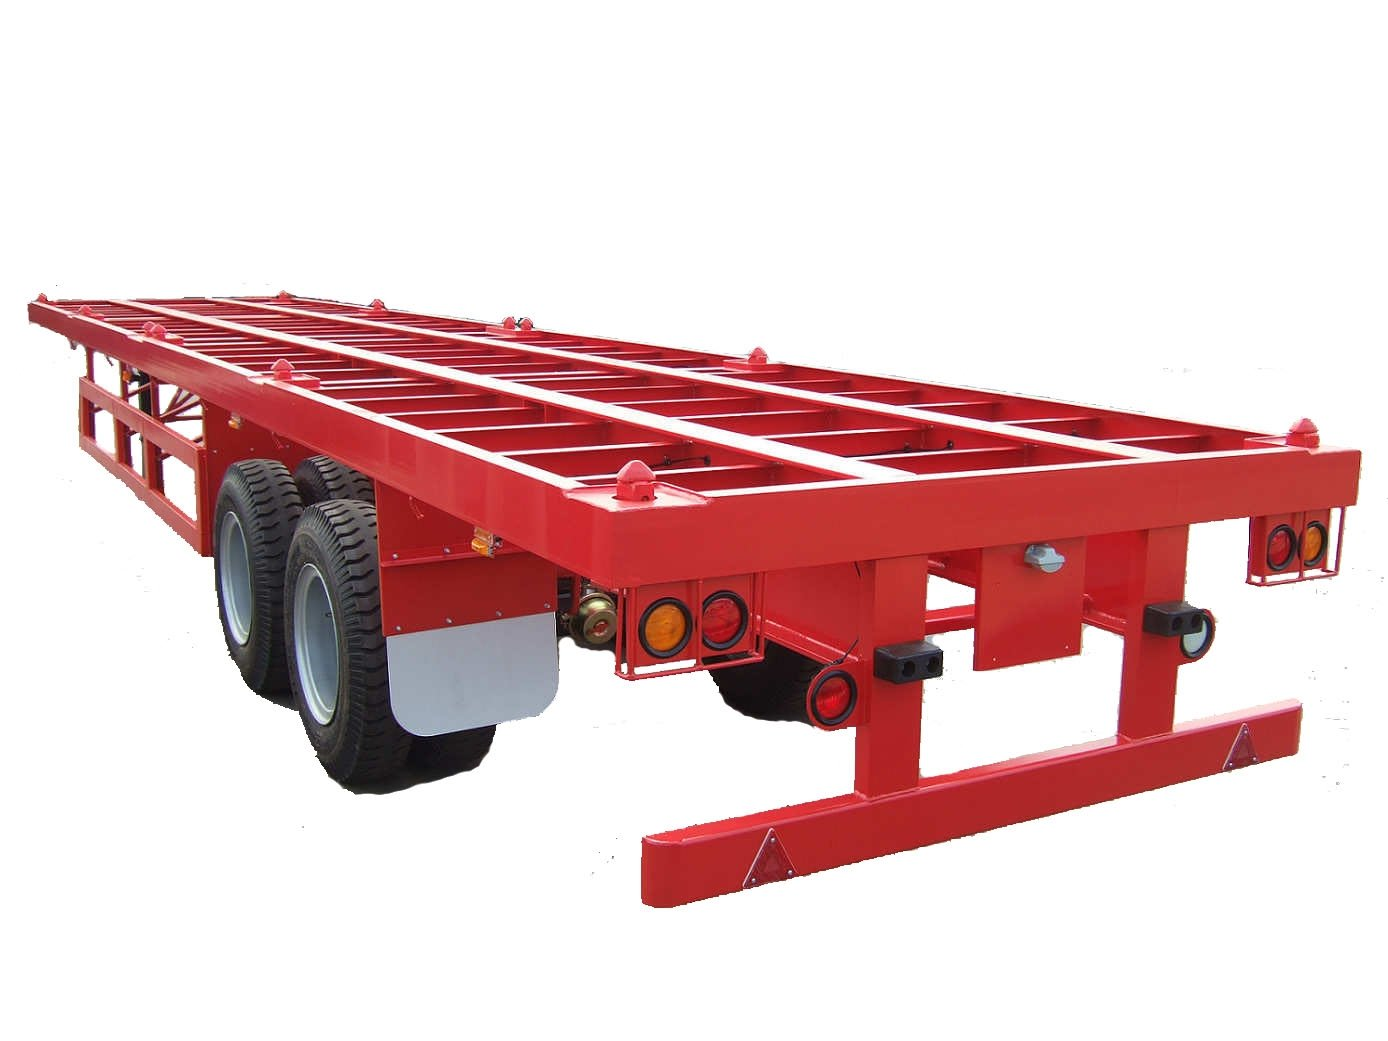 40ft Flatbed Trailer with Two Axles (for Wood Floor)